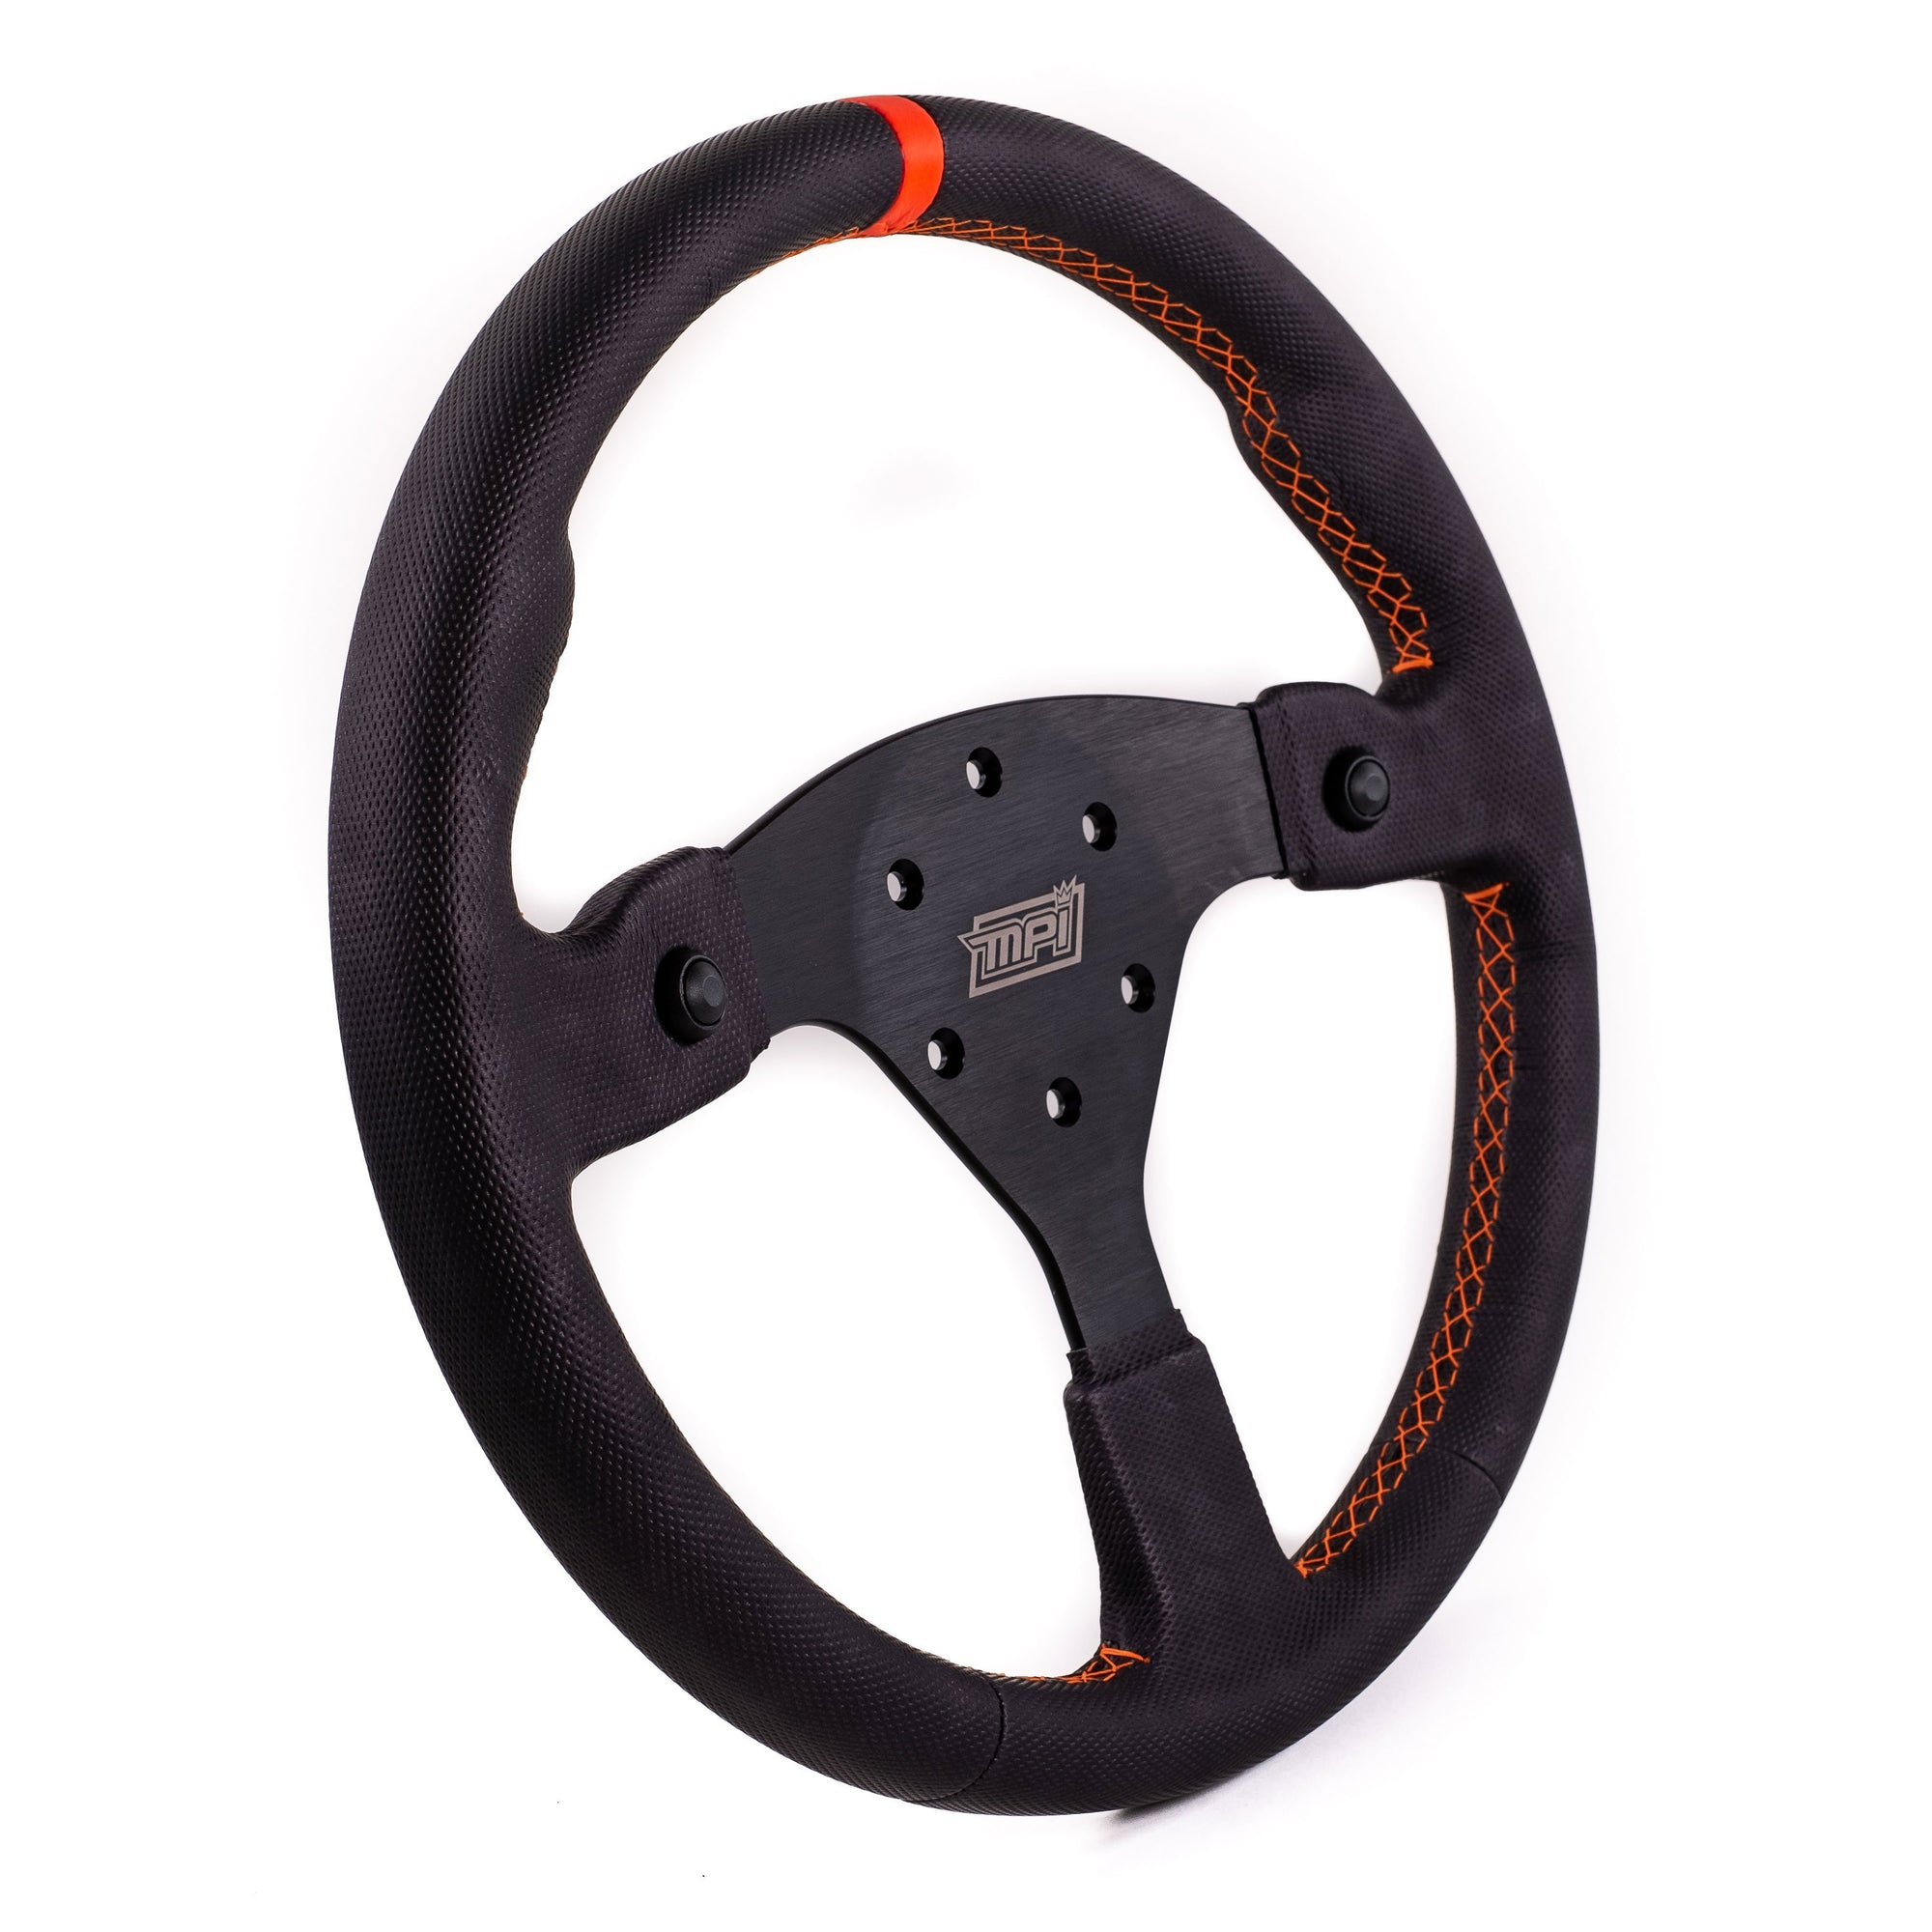 MPI Off Road Concept Specific High Grip Steering Wheel w/Black Push Buttons (MPI-F-14-2B-HG)-MPI-Motion Raceworks